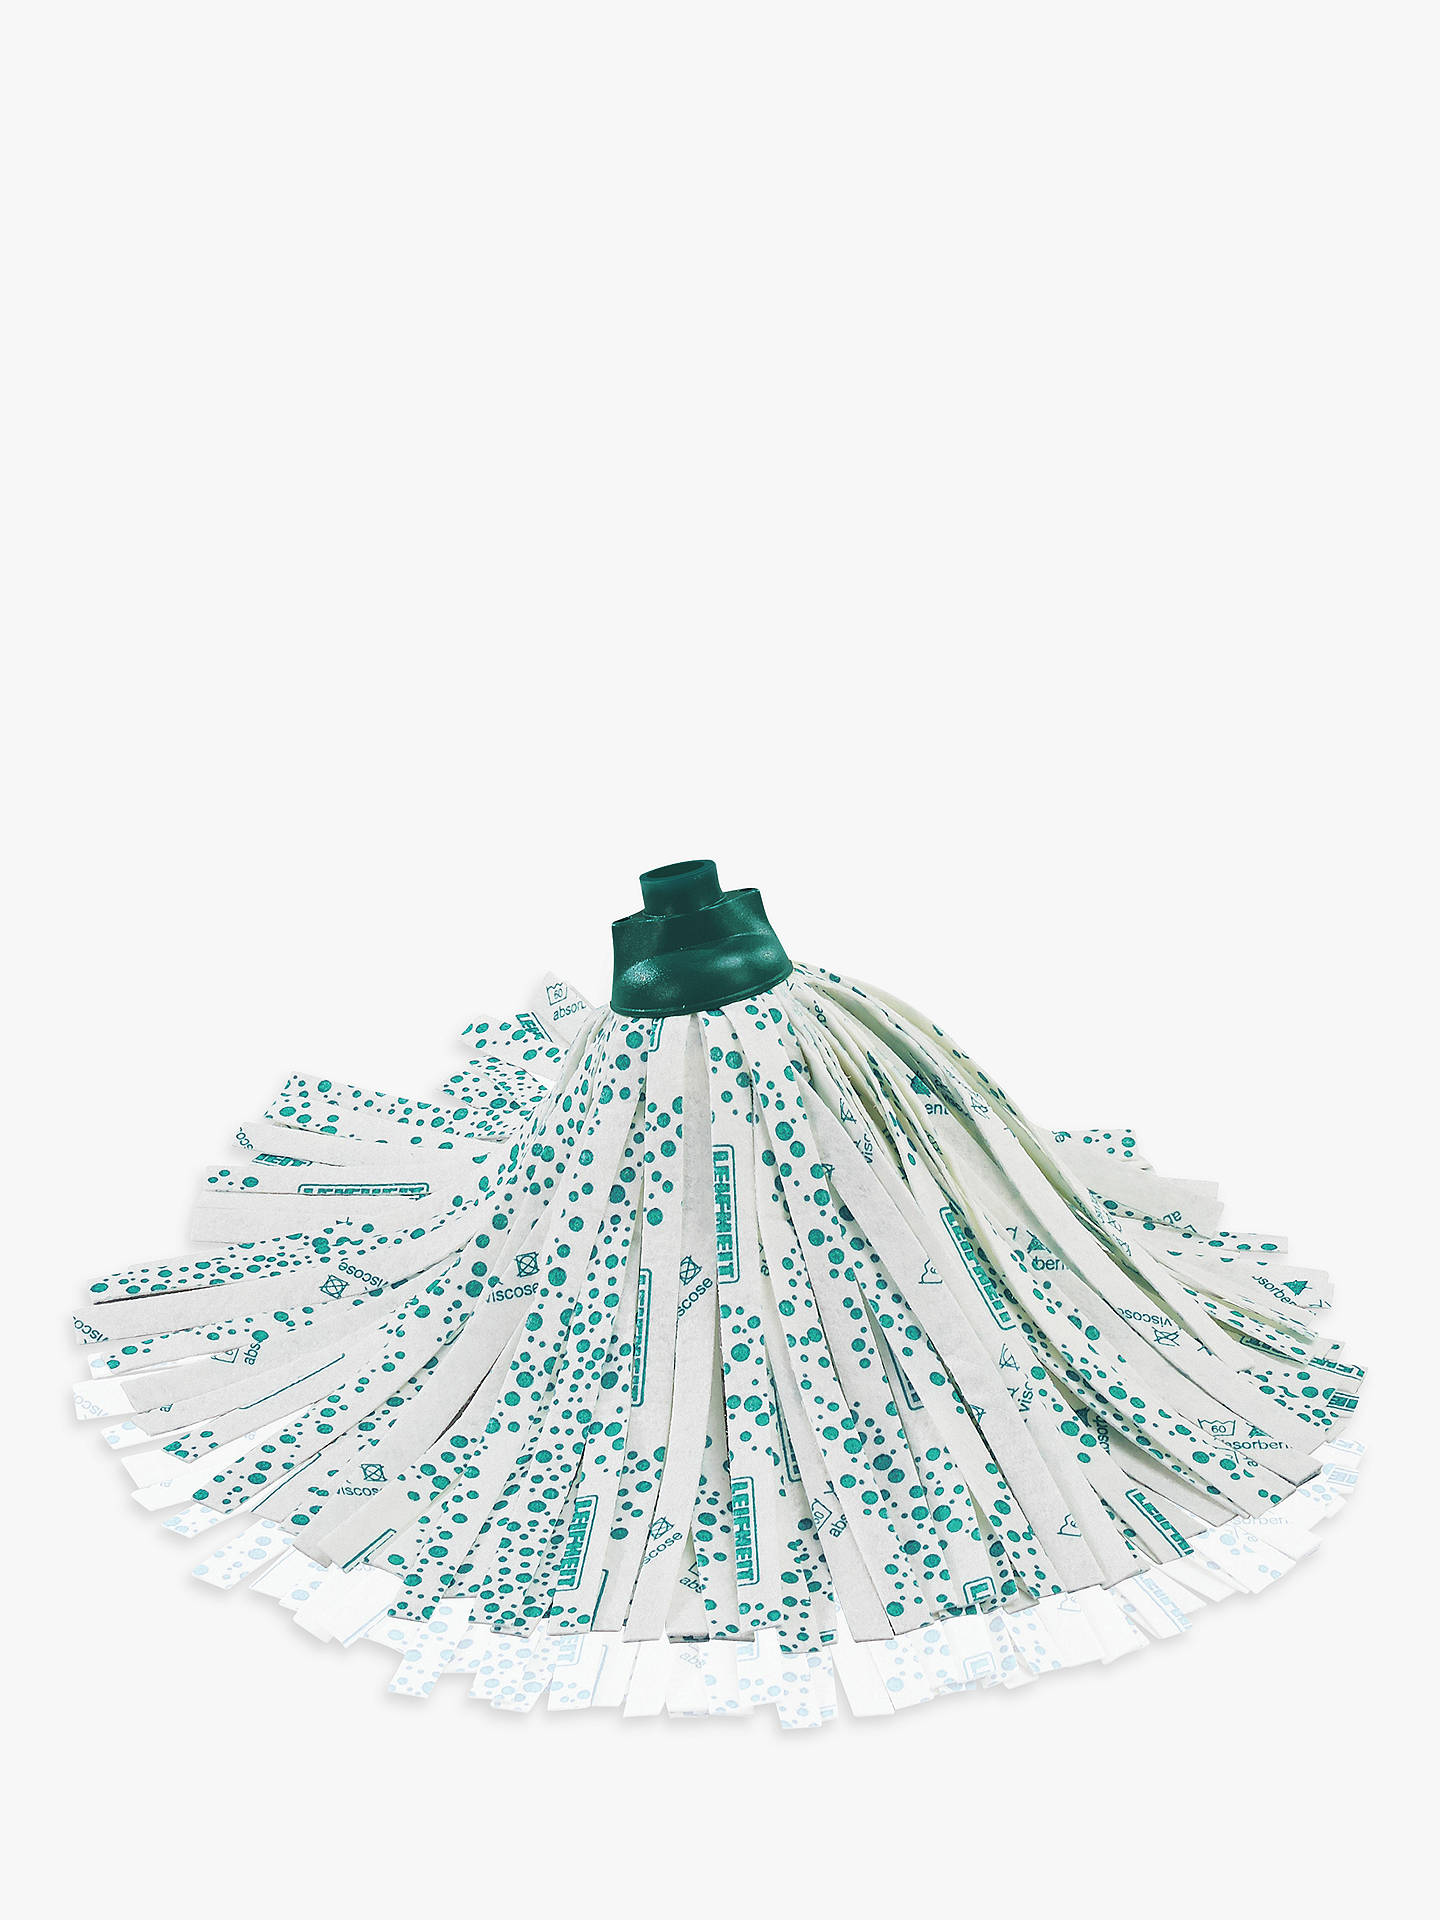 BuyLeifheit Classic Replacement Mop Head Online at johnlewis.com